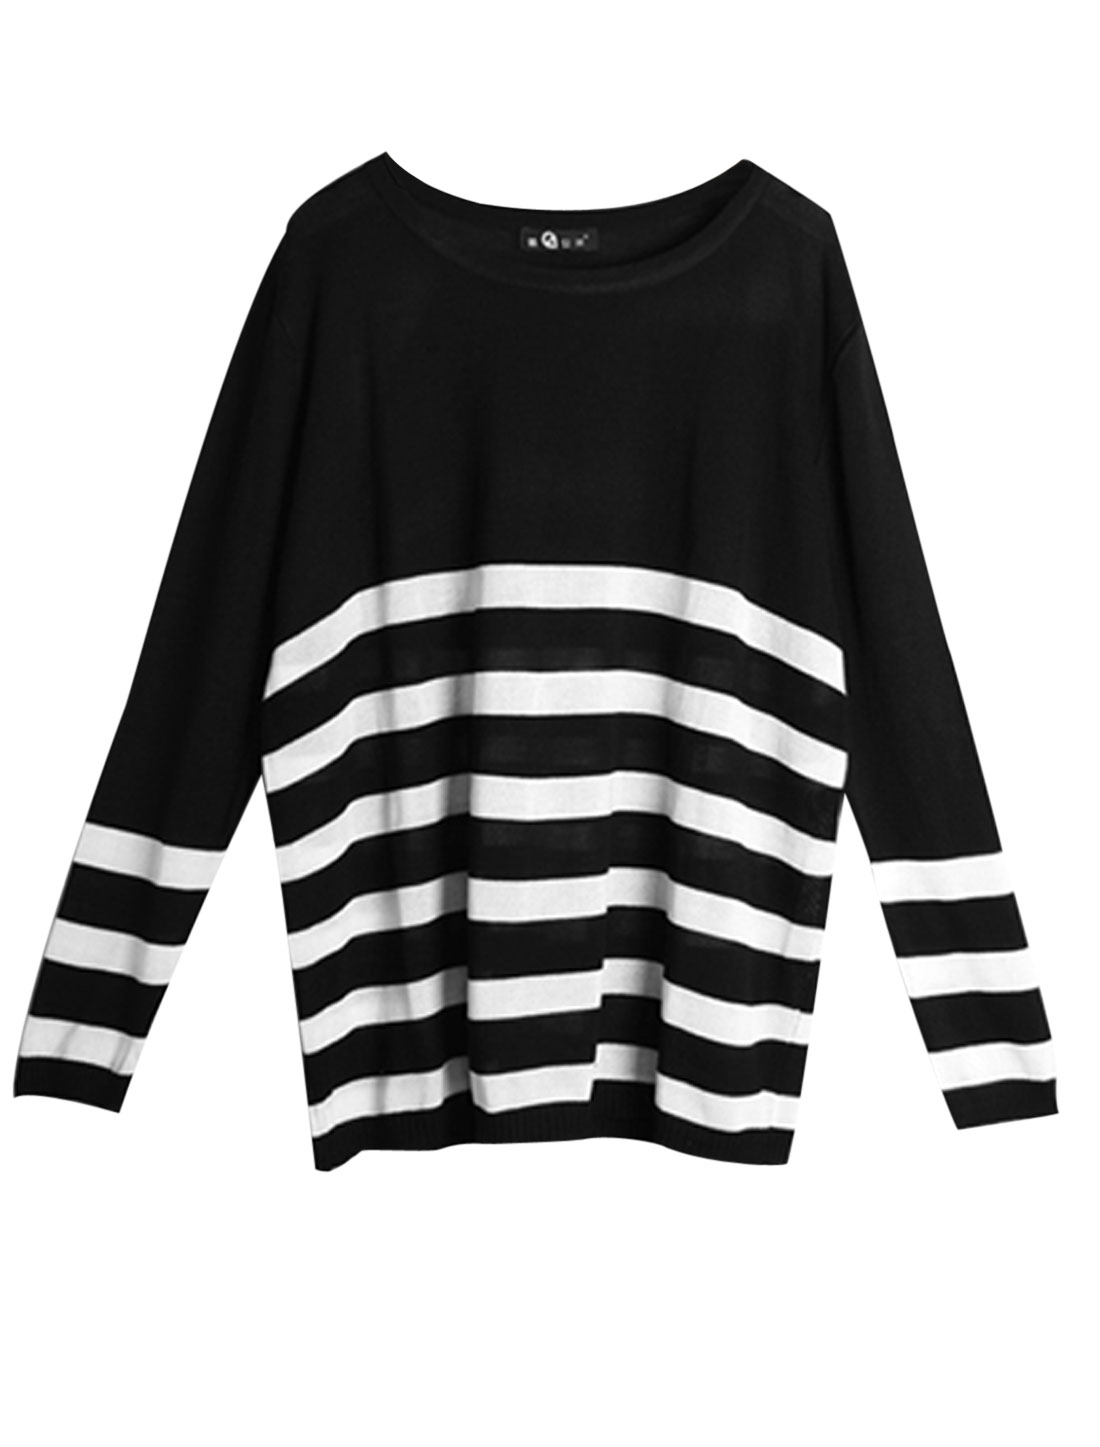 Women Round Neck Long Sleeve Stripes Loose Knitwear Black White M